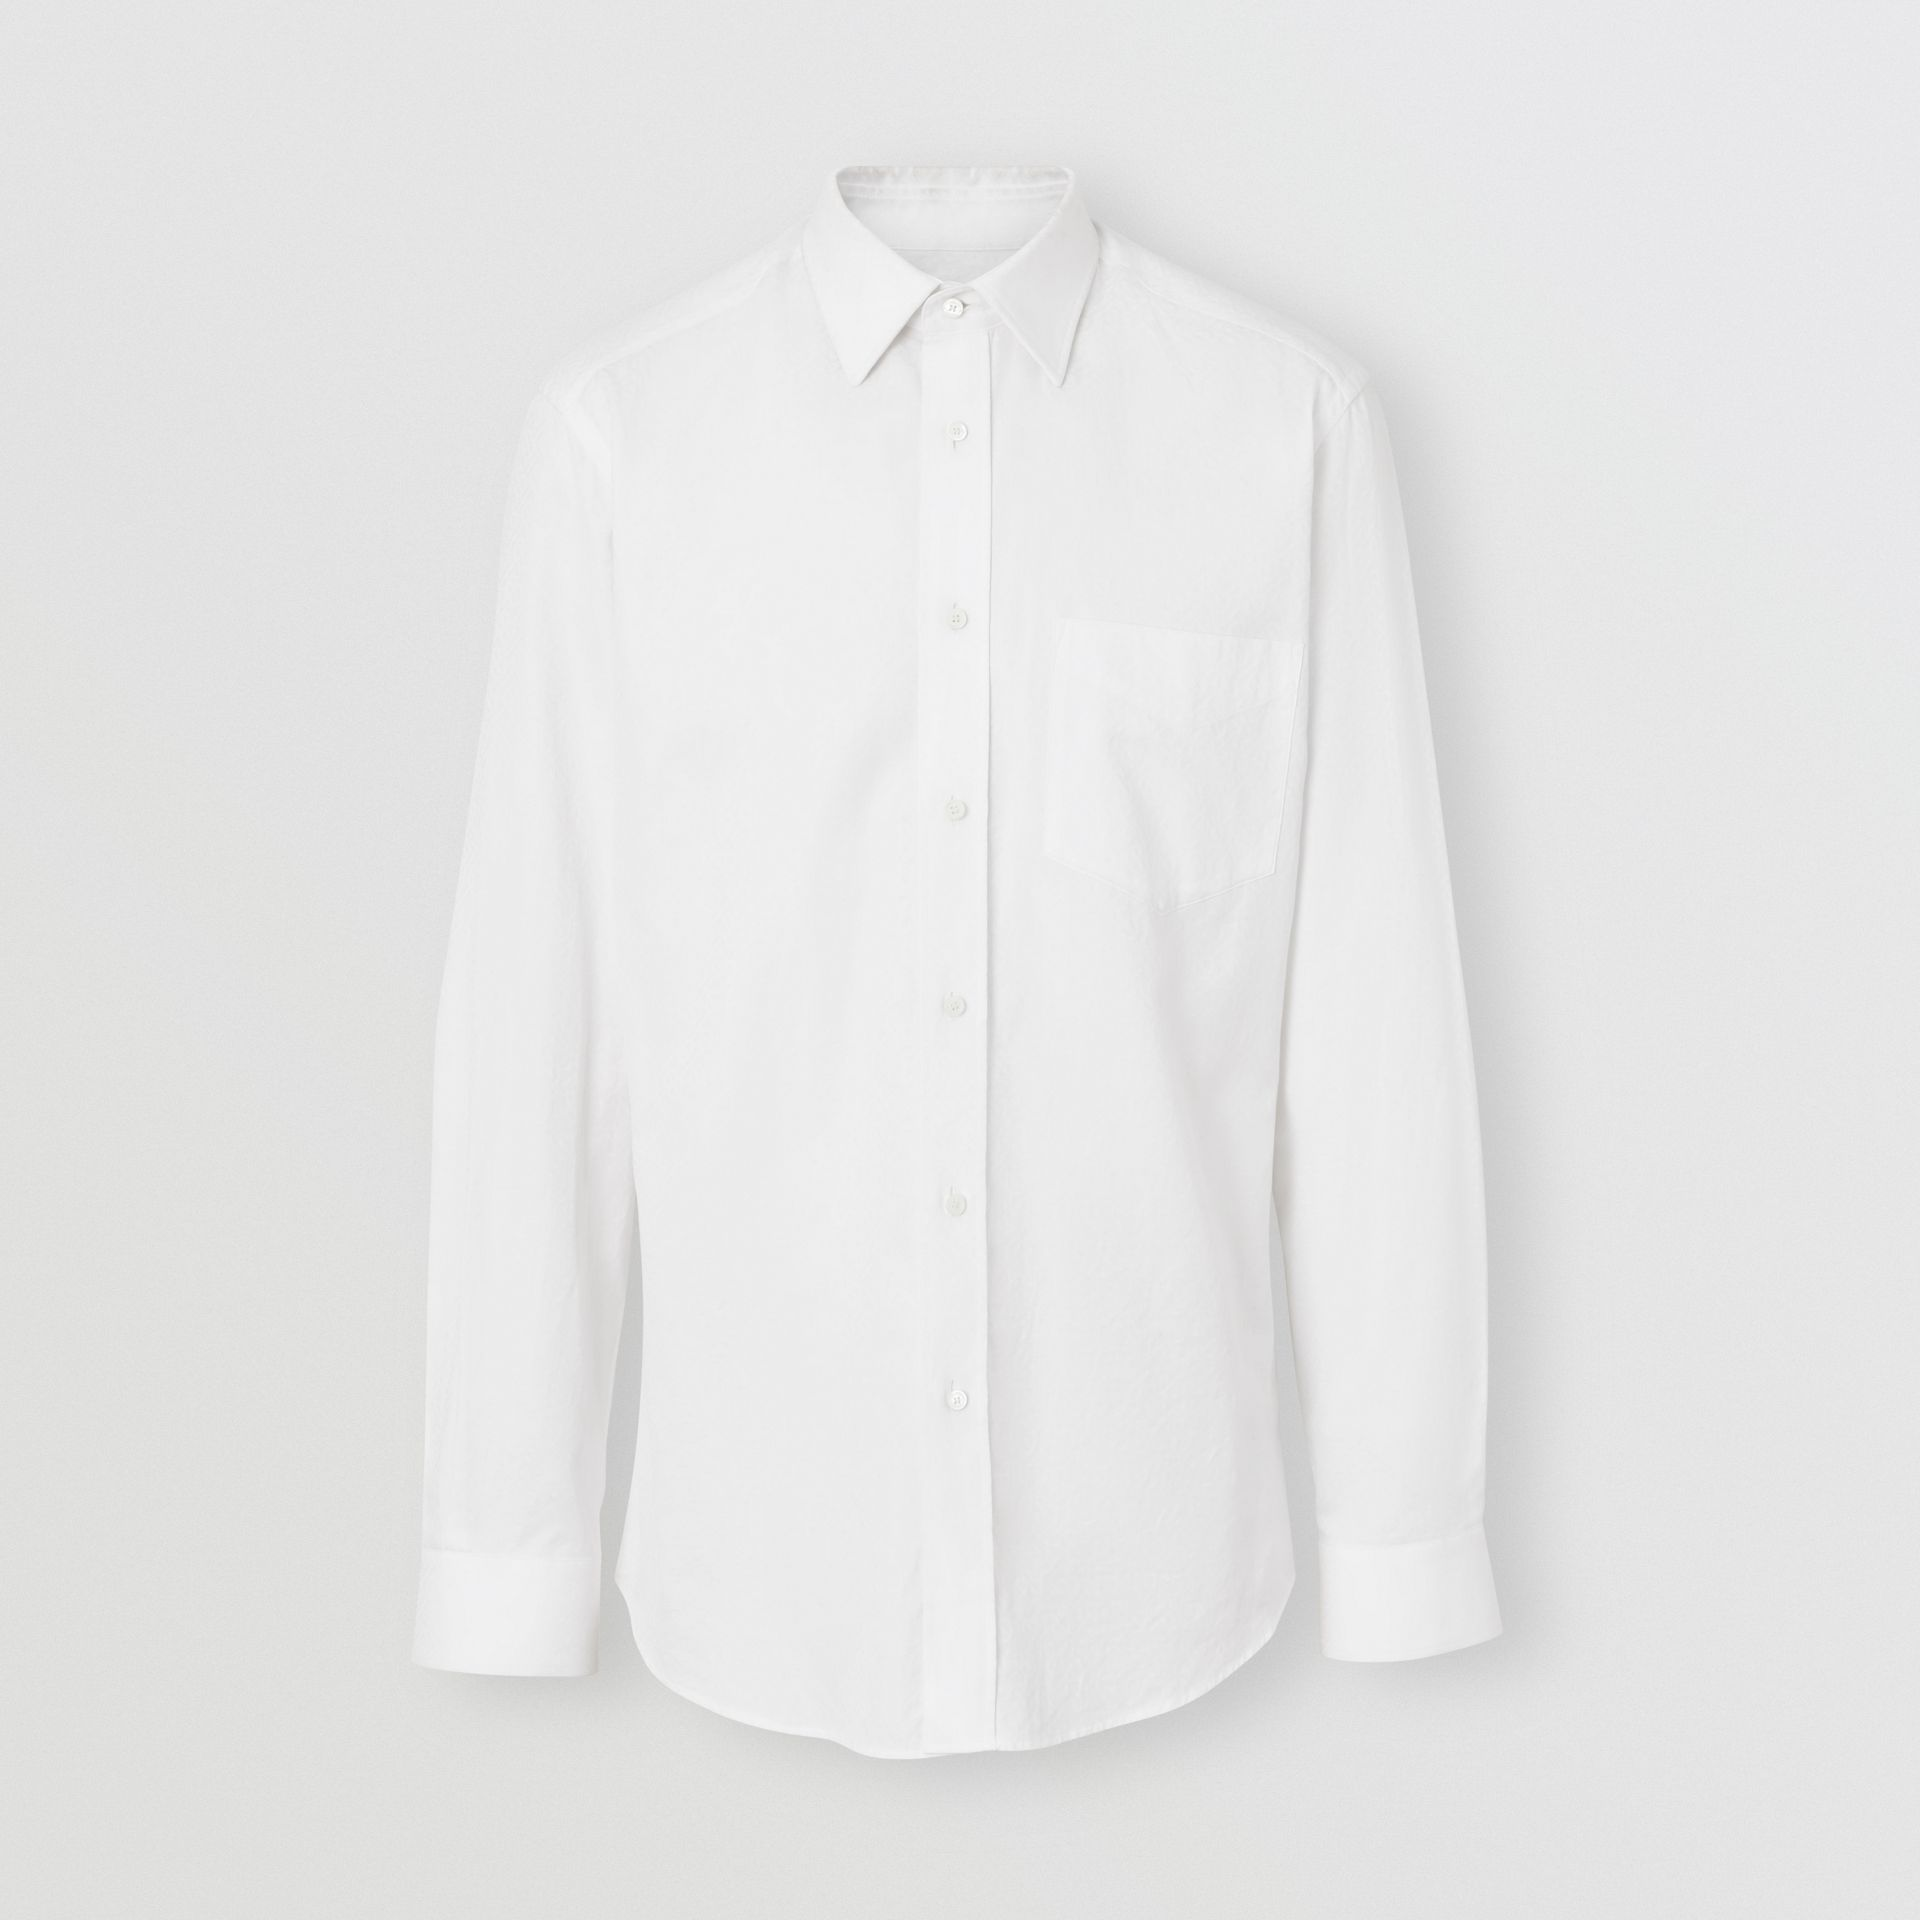 Classic Fit Monogram Cotton Jacquard Shirt in White - Men | Burberry Canada - gallery image 3